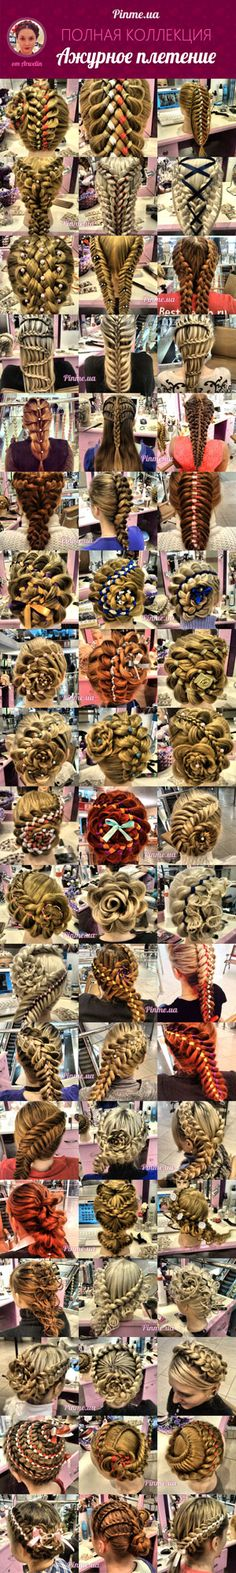 I love these hairstyles but you look at it and it is a language that you don't understand like find really cool hairstyles on You Tube and it's in this language